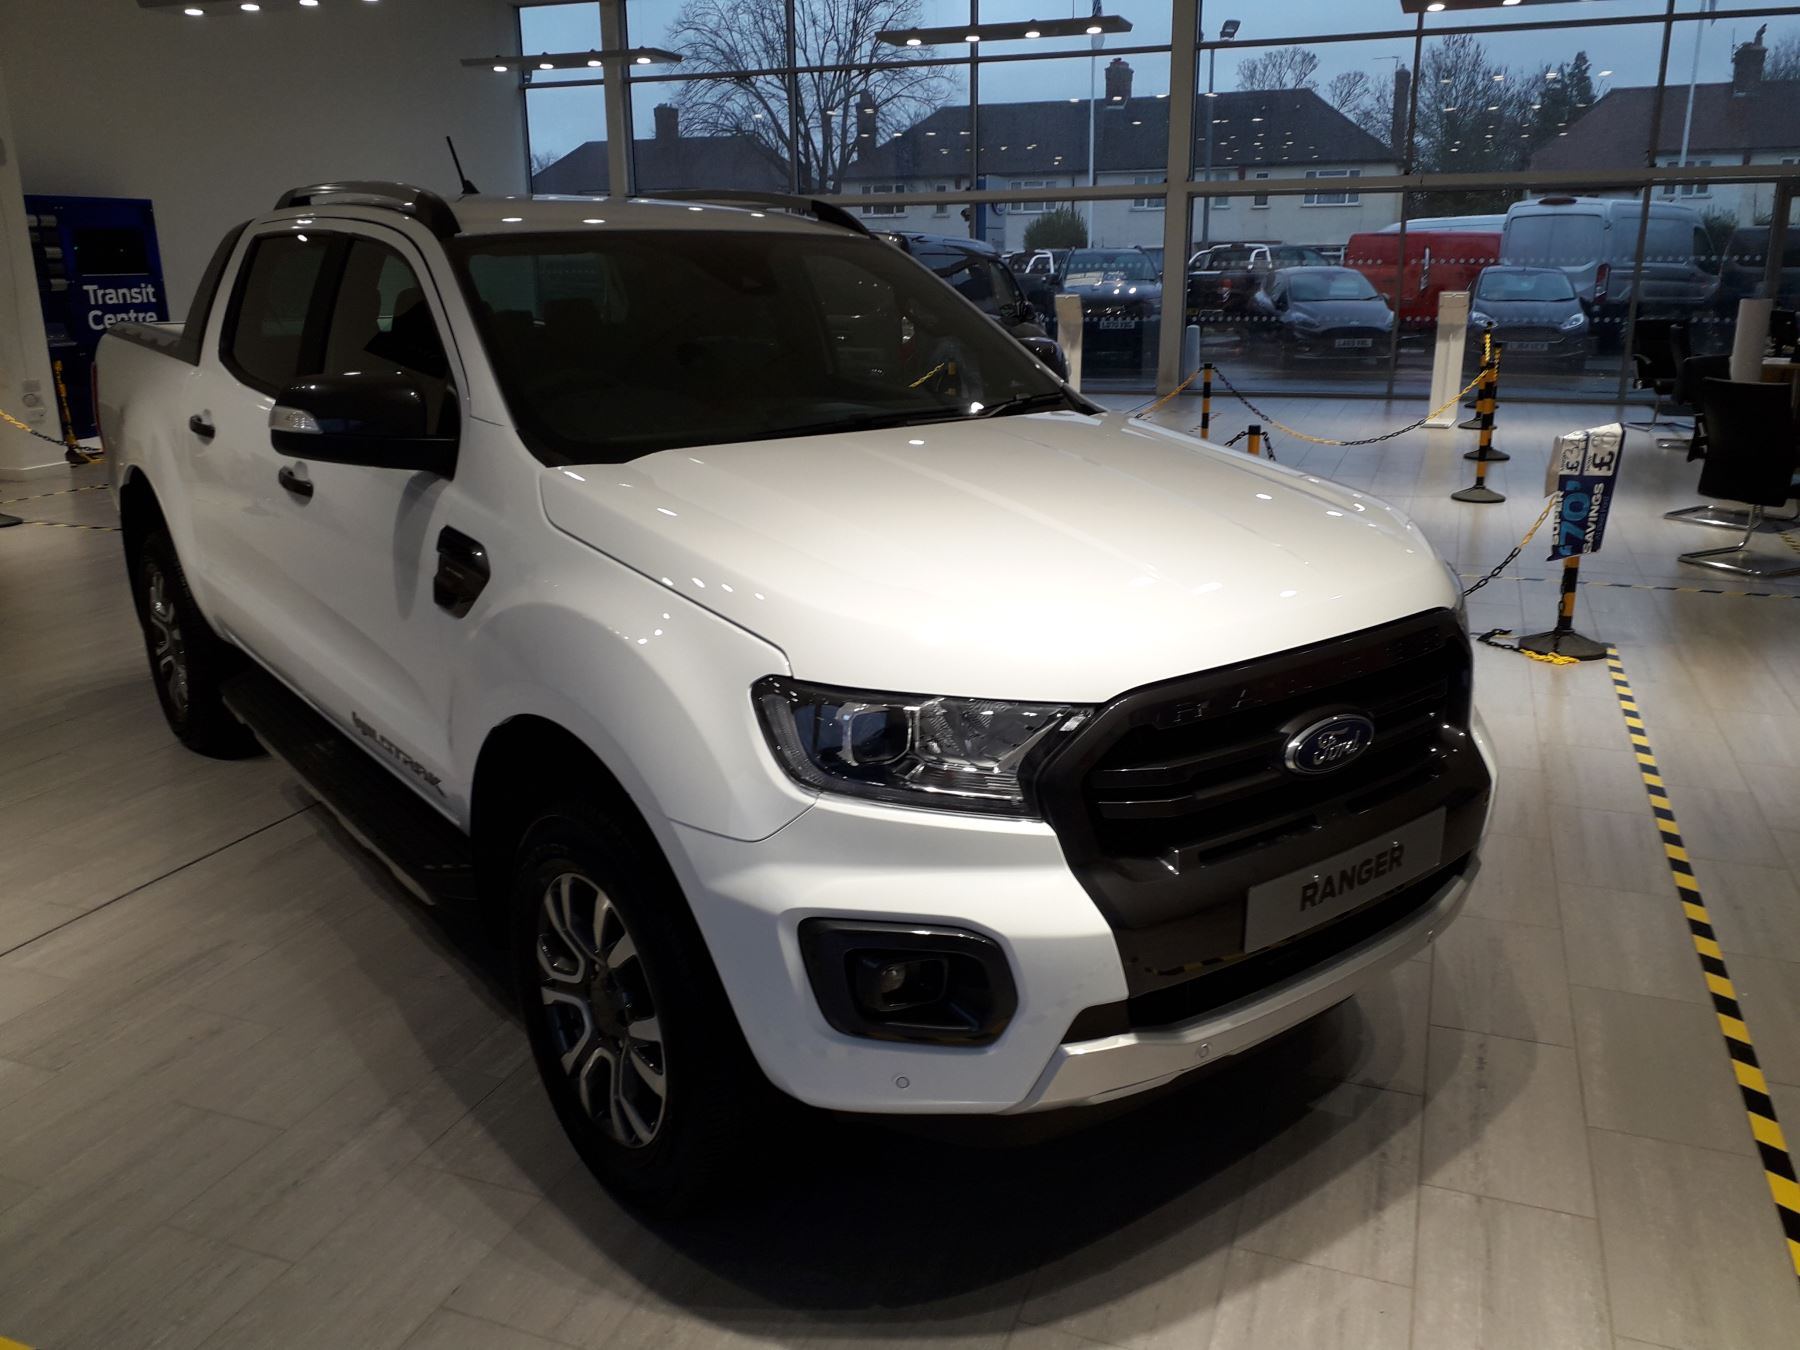 Ford Ranger Wildtrak 2.0 213PS 10SP Auto PLUS VAT Diesel Automatic 4 door (2021)